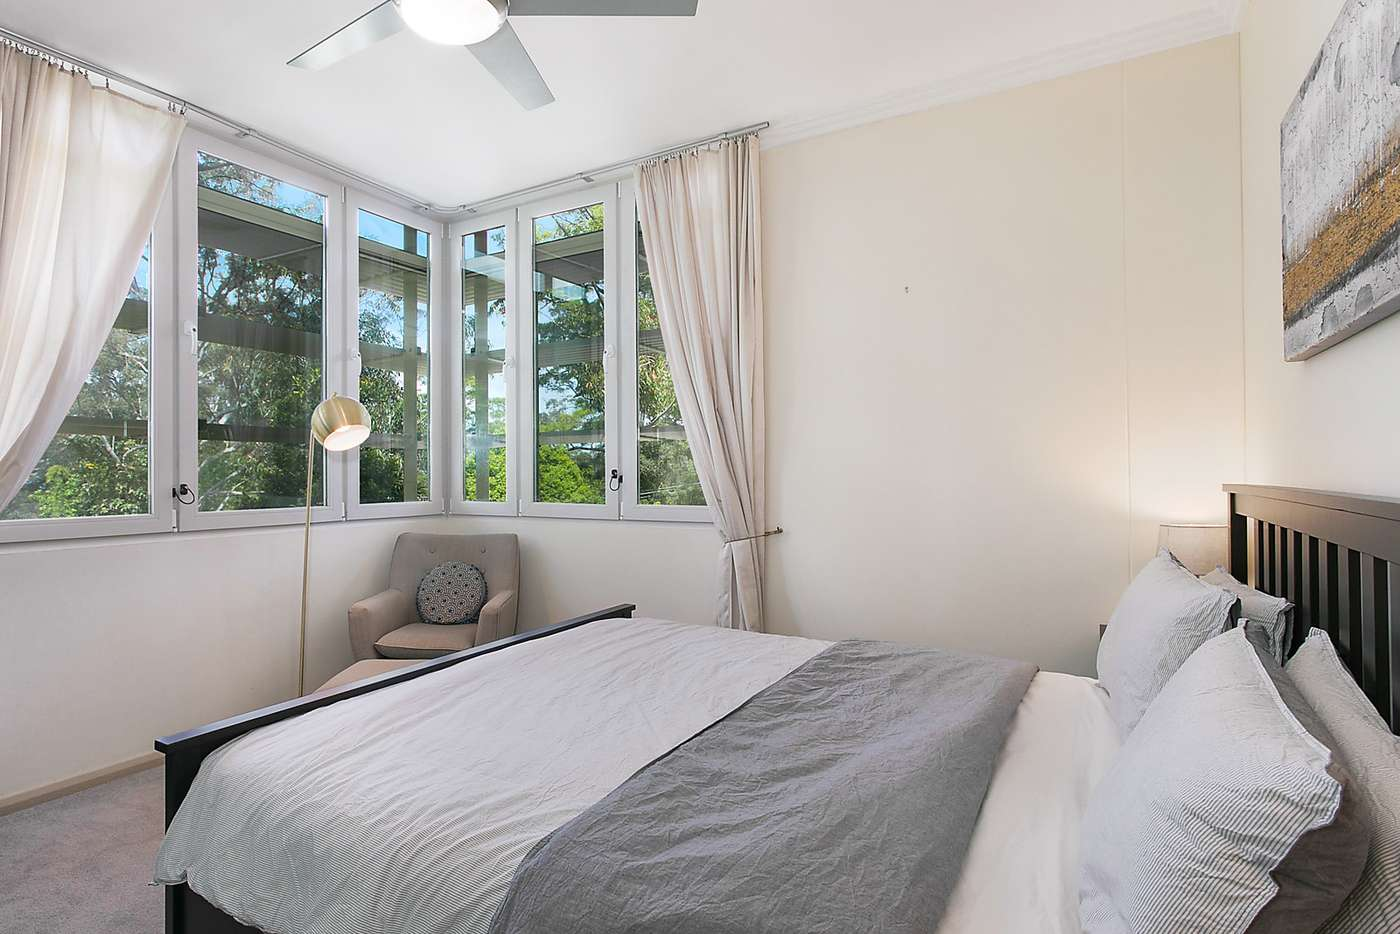 Sixth view of Homely apartment listing, 60/4-8 Bobbin Head Road, Pymble NSW 2073